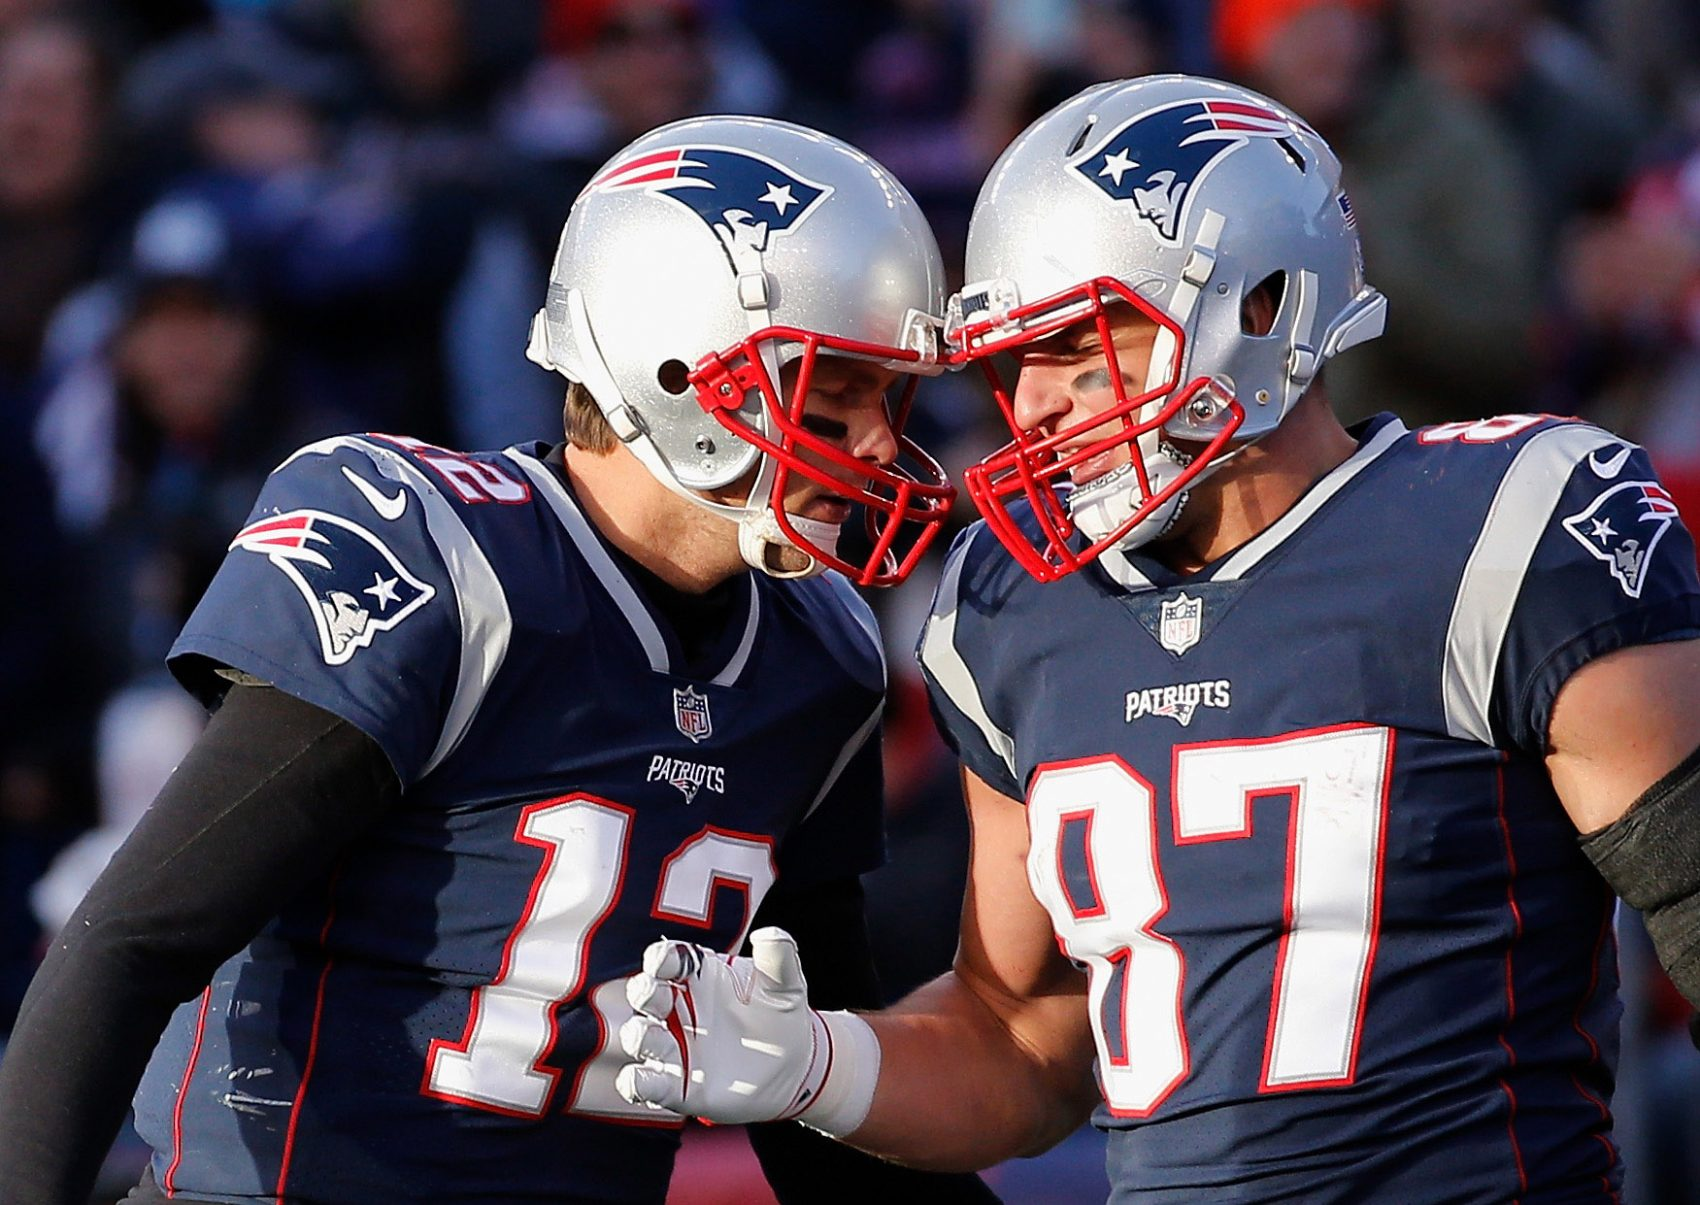 nfl-week 4-betting line-new england patriots-miami dolphins-predictions-las vegas